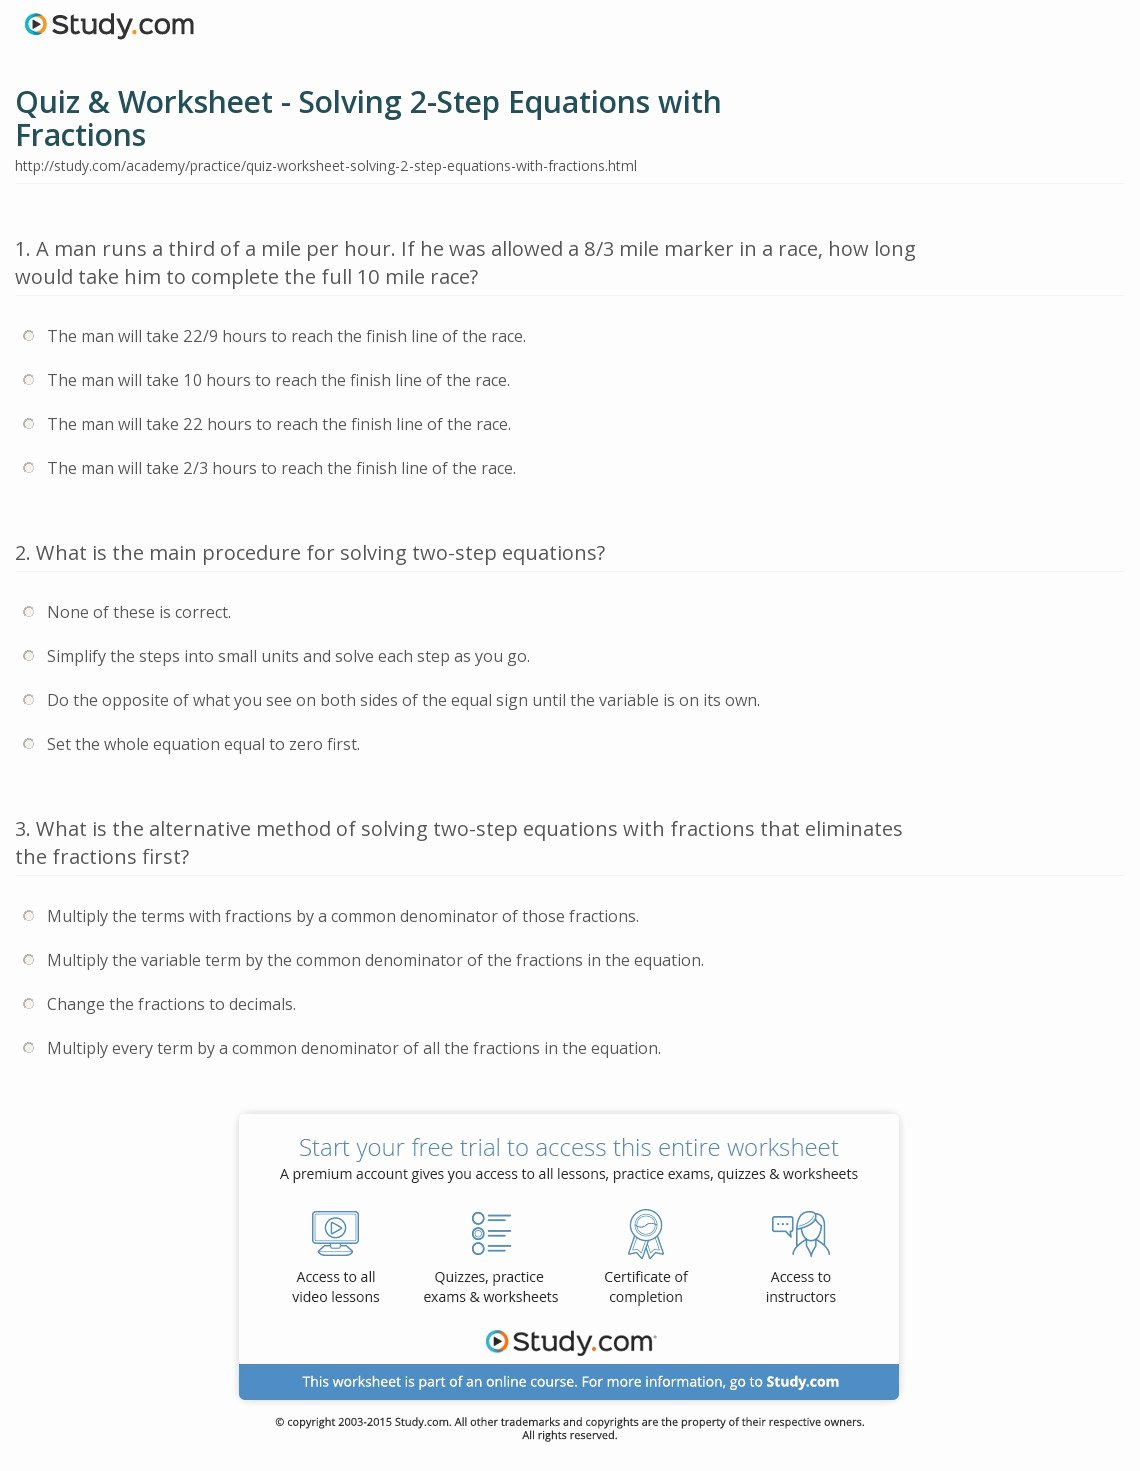 2 Step Equations Worksheet Luxury Quiz & Worksheet solving 2 Step Equations with Fractions